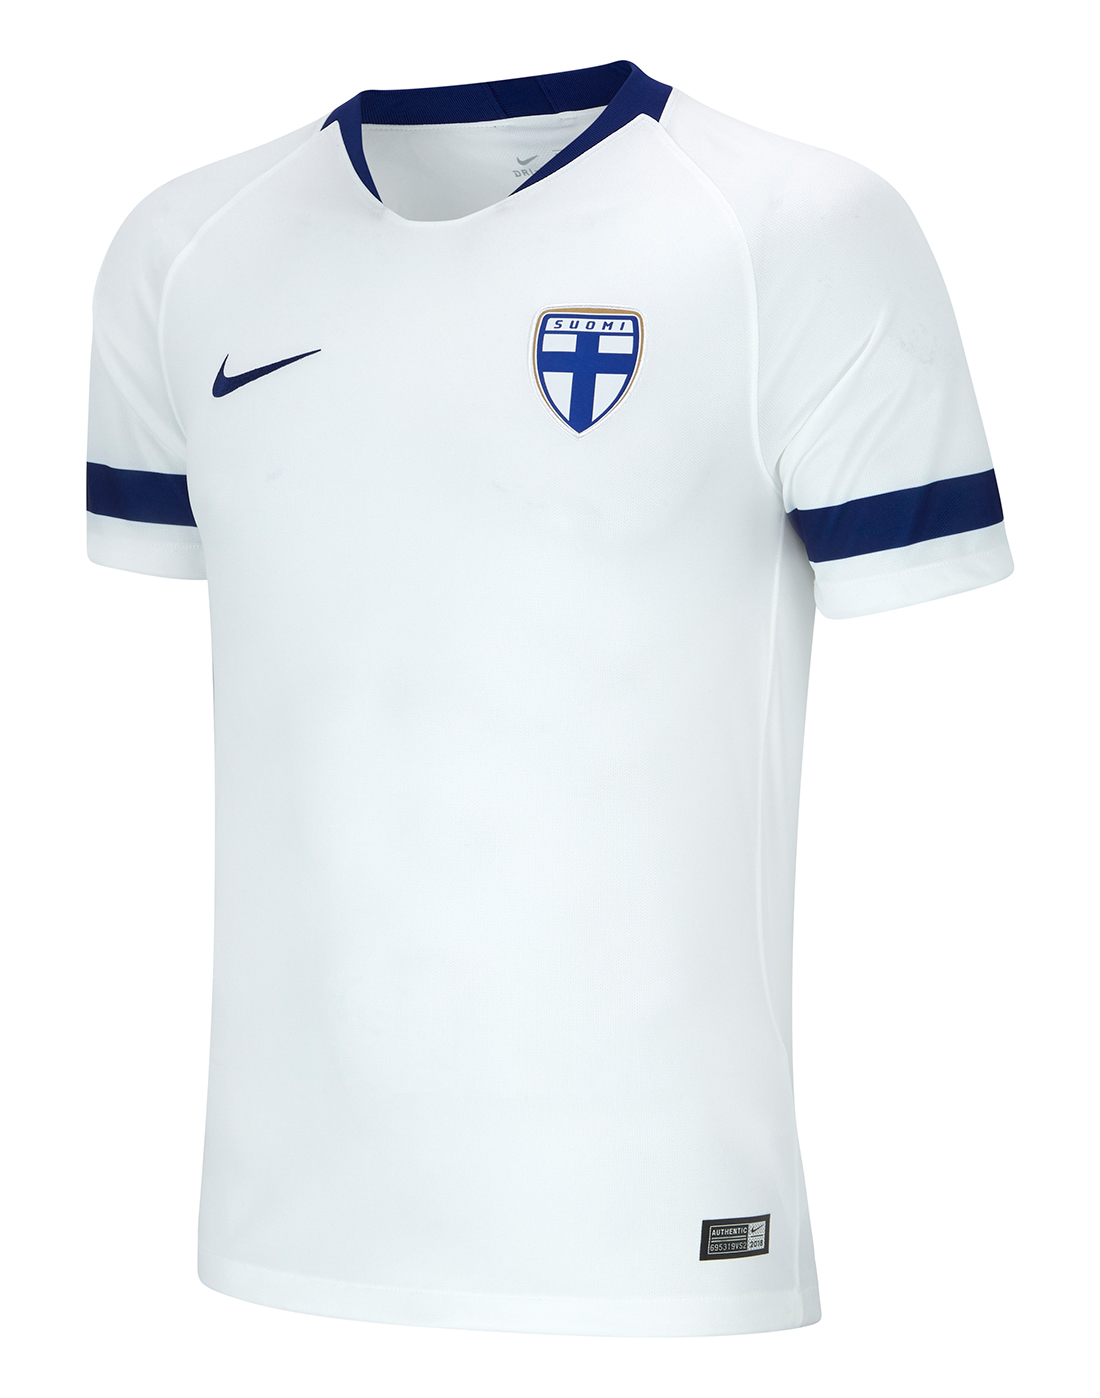 bb1023acb90 Nike Adult Finland Home 18/19 Jersey   Life Style Sports